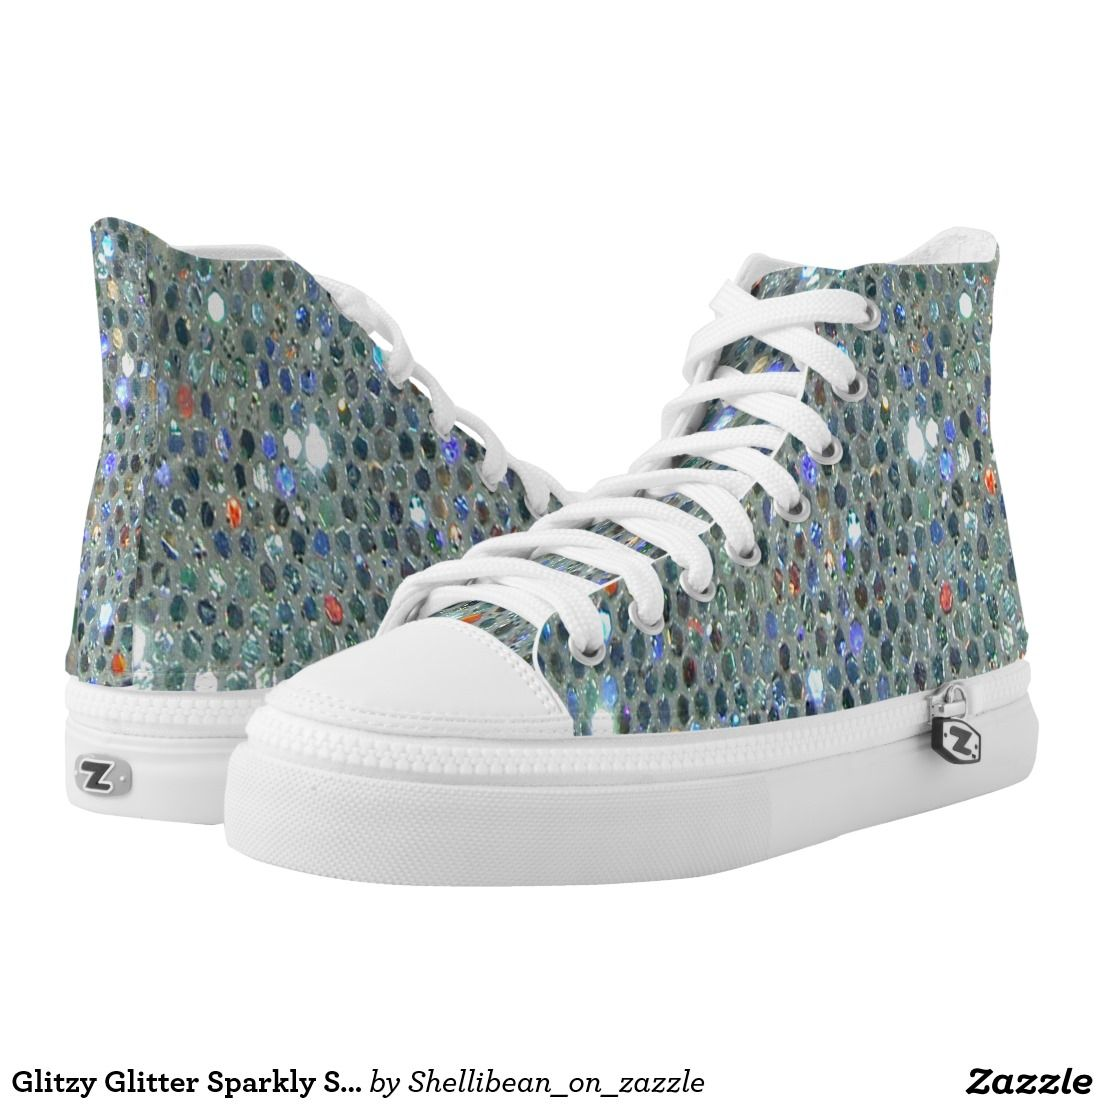 Glitzy Glitter Sparkly Silver Slipper Bling Printed Shoes